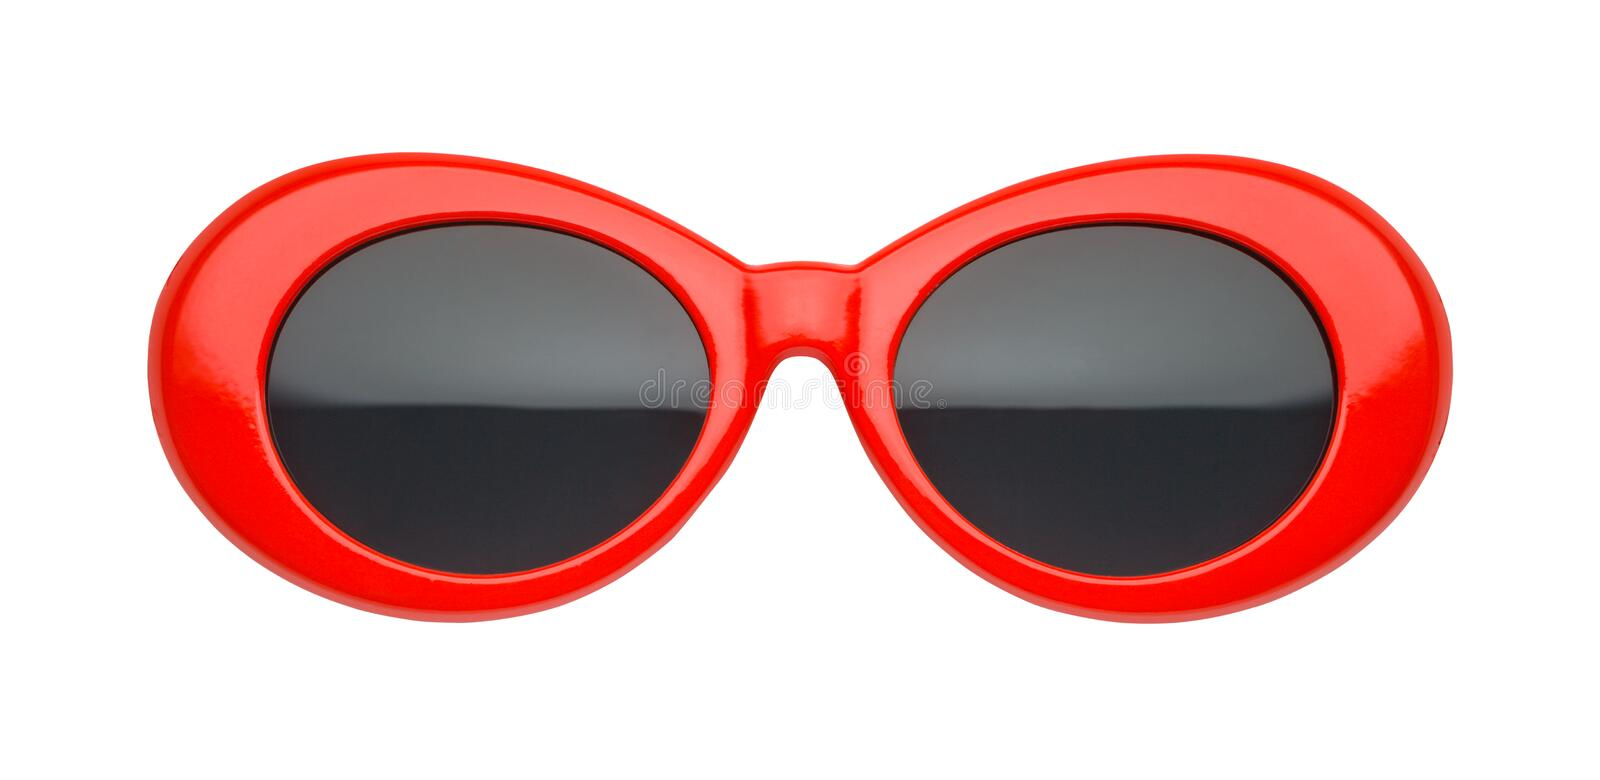 Red Oval Sunglasses Front View stock photo